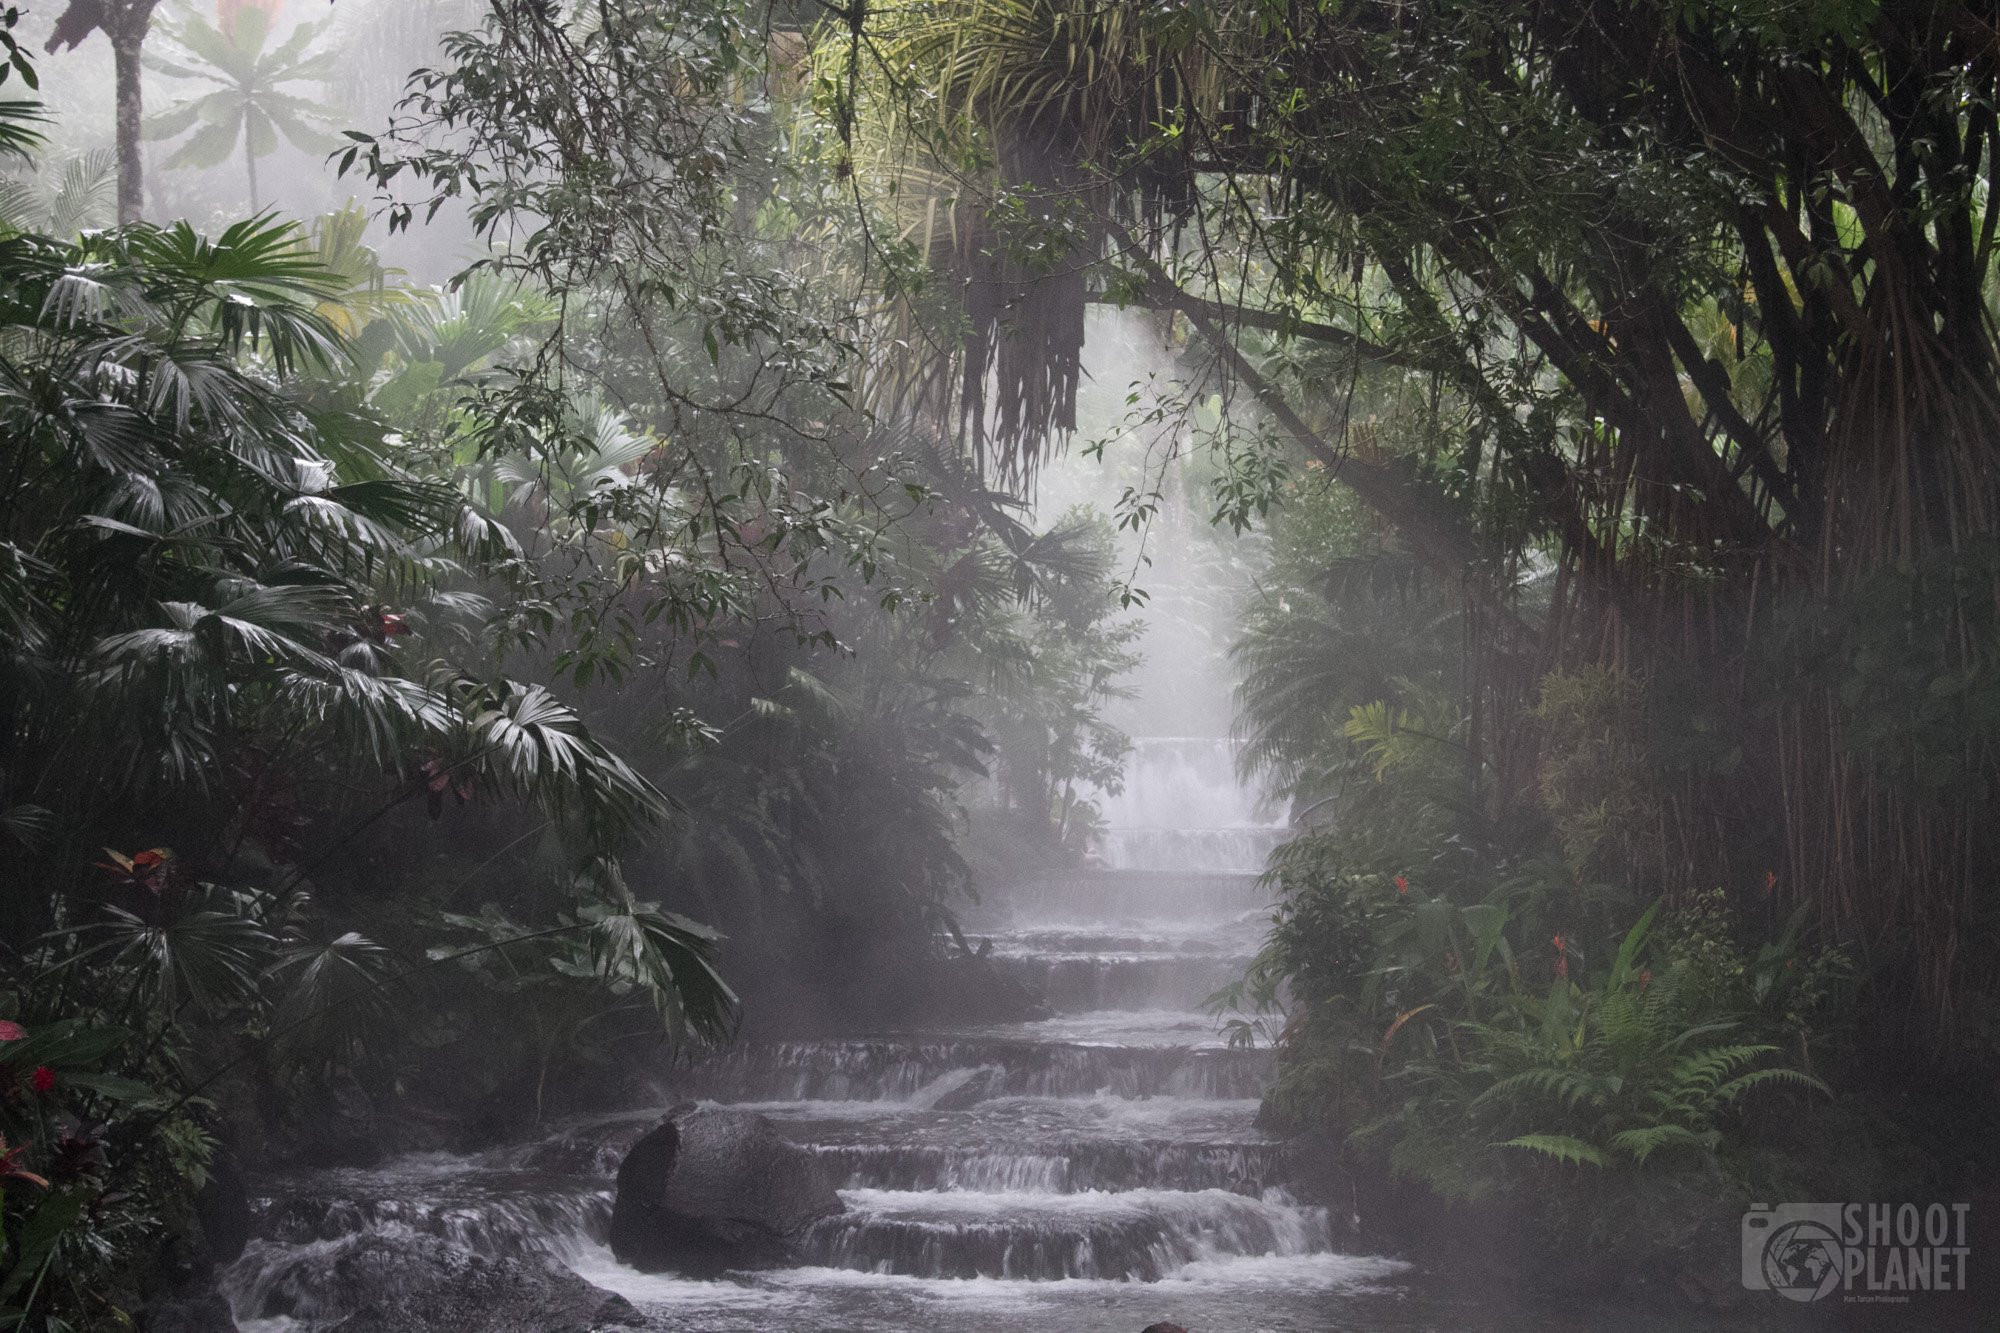 Rainforest Thermal spring, Costa Rica